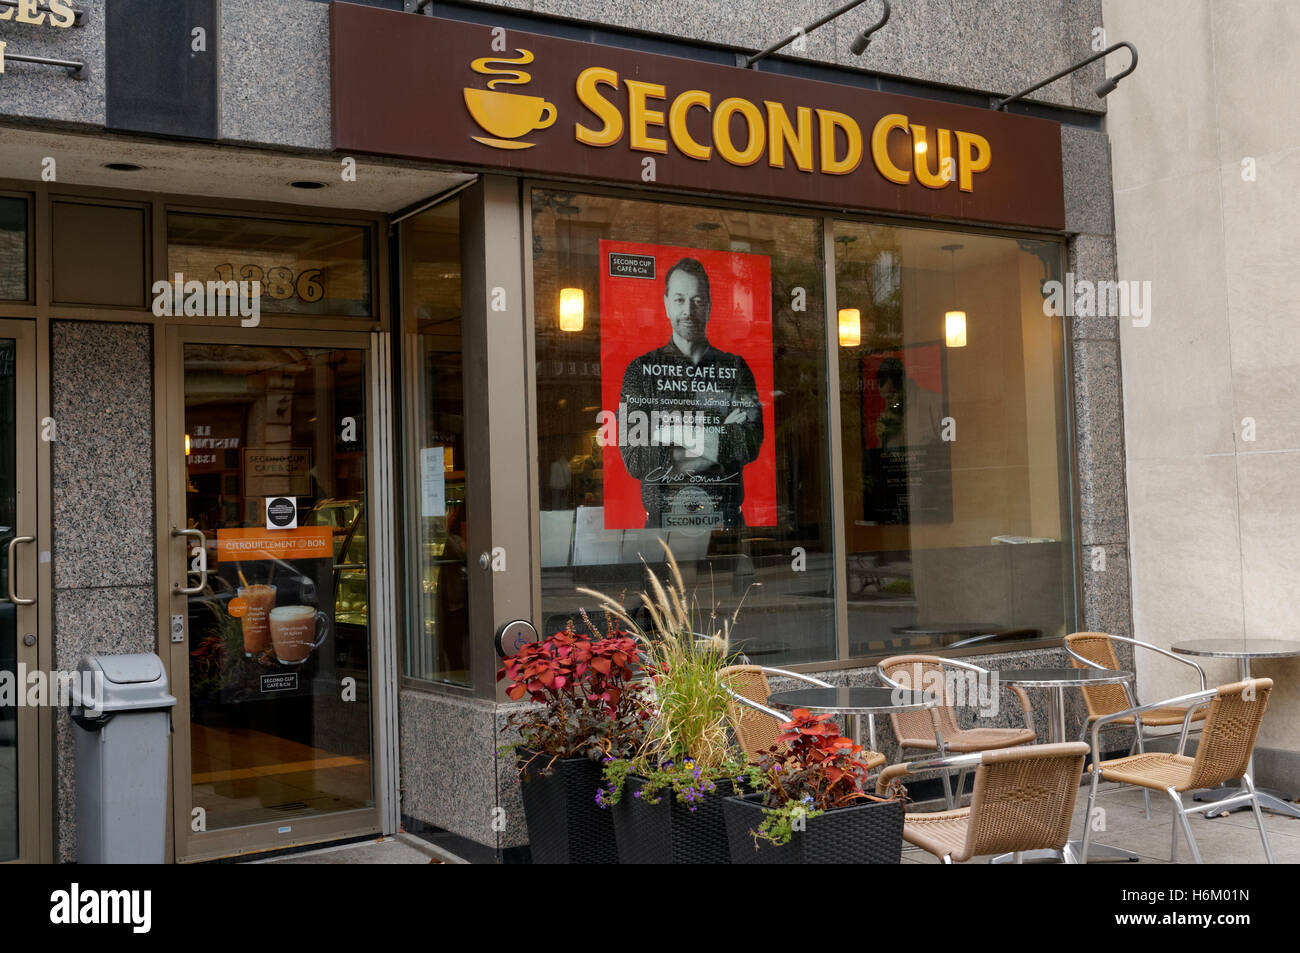 Second Cup coffee house on Greene Avenue in Westmount, Montreal, Quebec, Canada - Stock Image